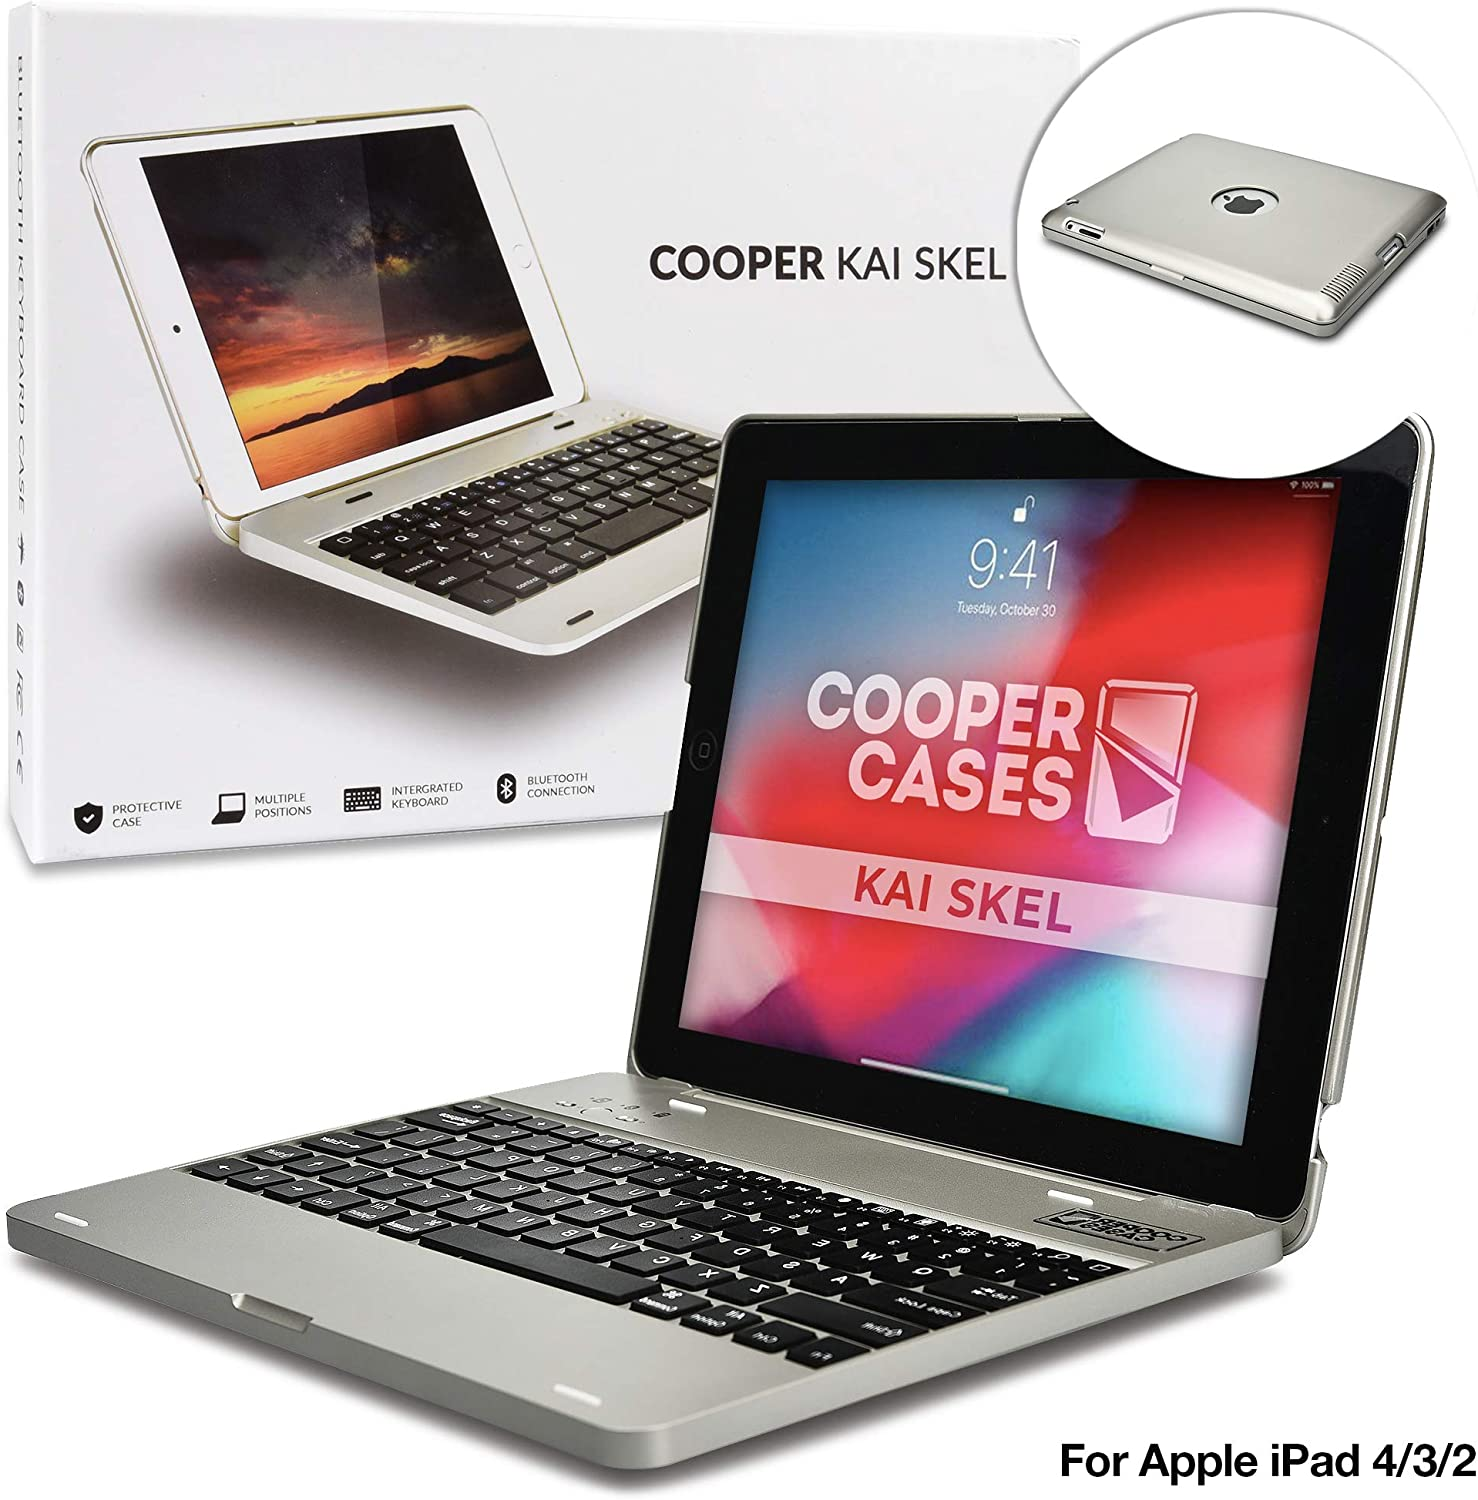 Cooper Kai SKEL P1 [Bluetooth Wireless Keyboard] Case for iPad 4, iPad 3, iPad 2 | Clamshell Cover, 2800mAh Power Bank, 60HR Battery (Silver)